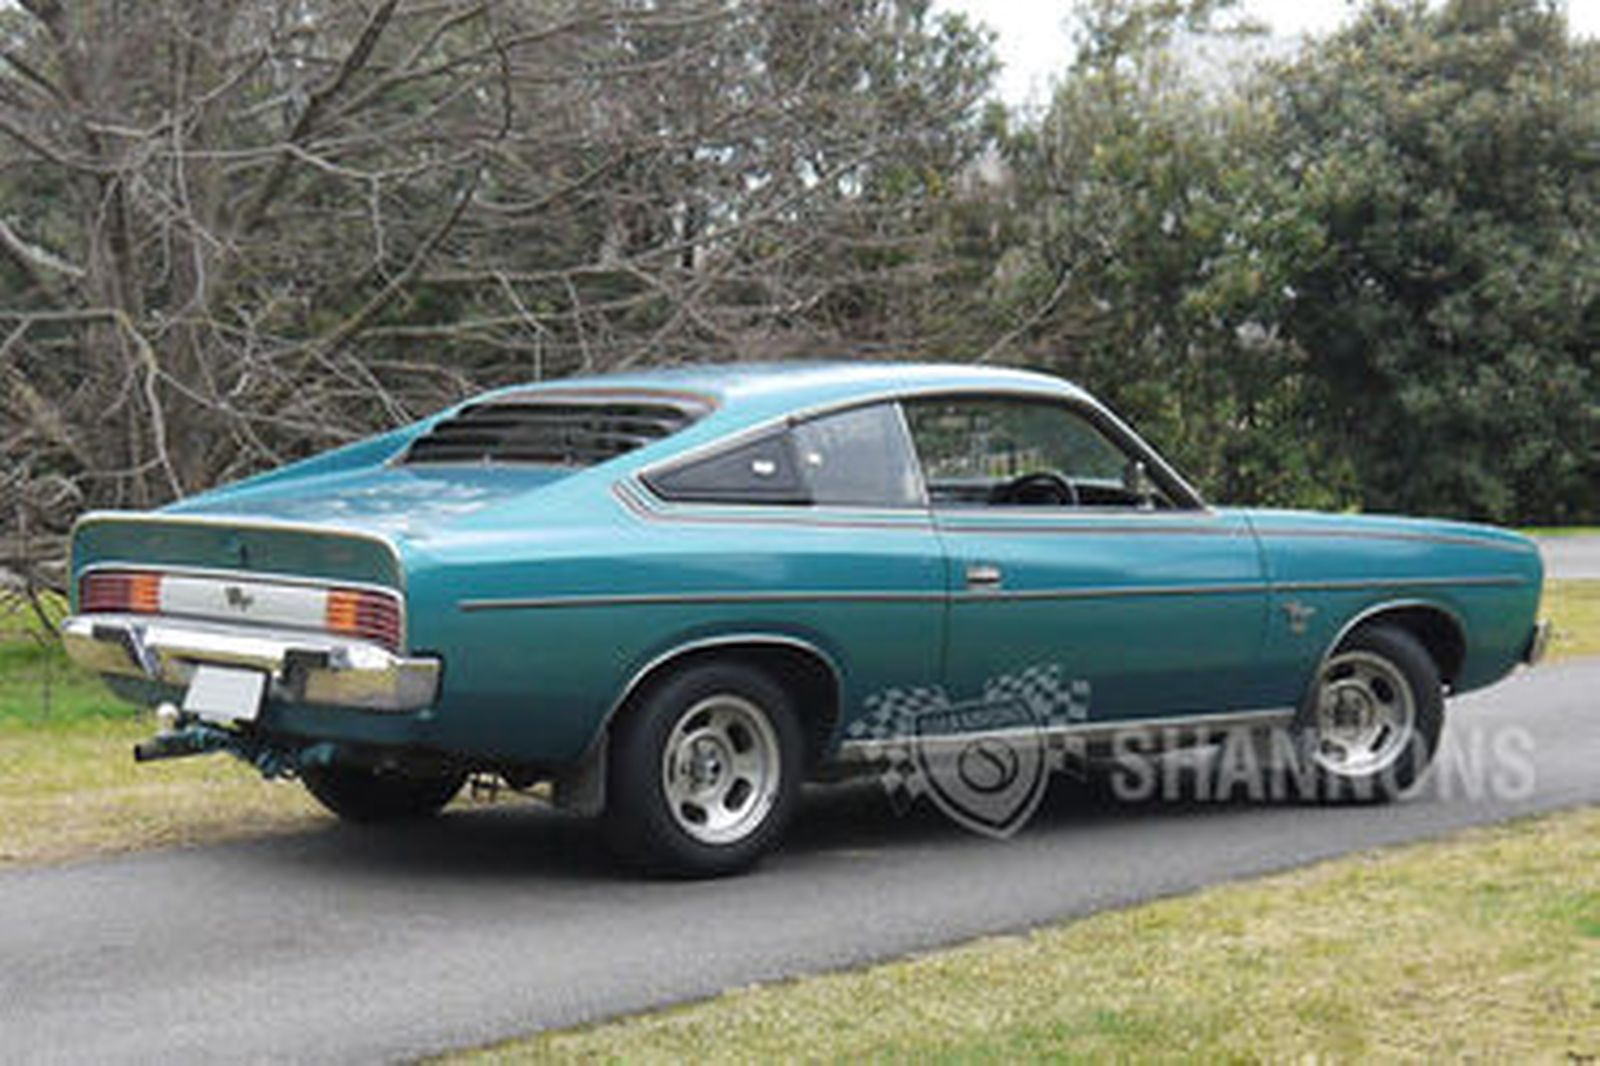 Sold: Chrysler CL Charger 770 Coupe Auctions - Lot 38 - Shannons